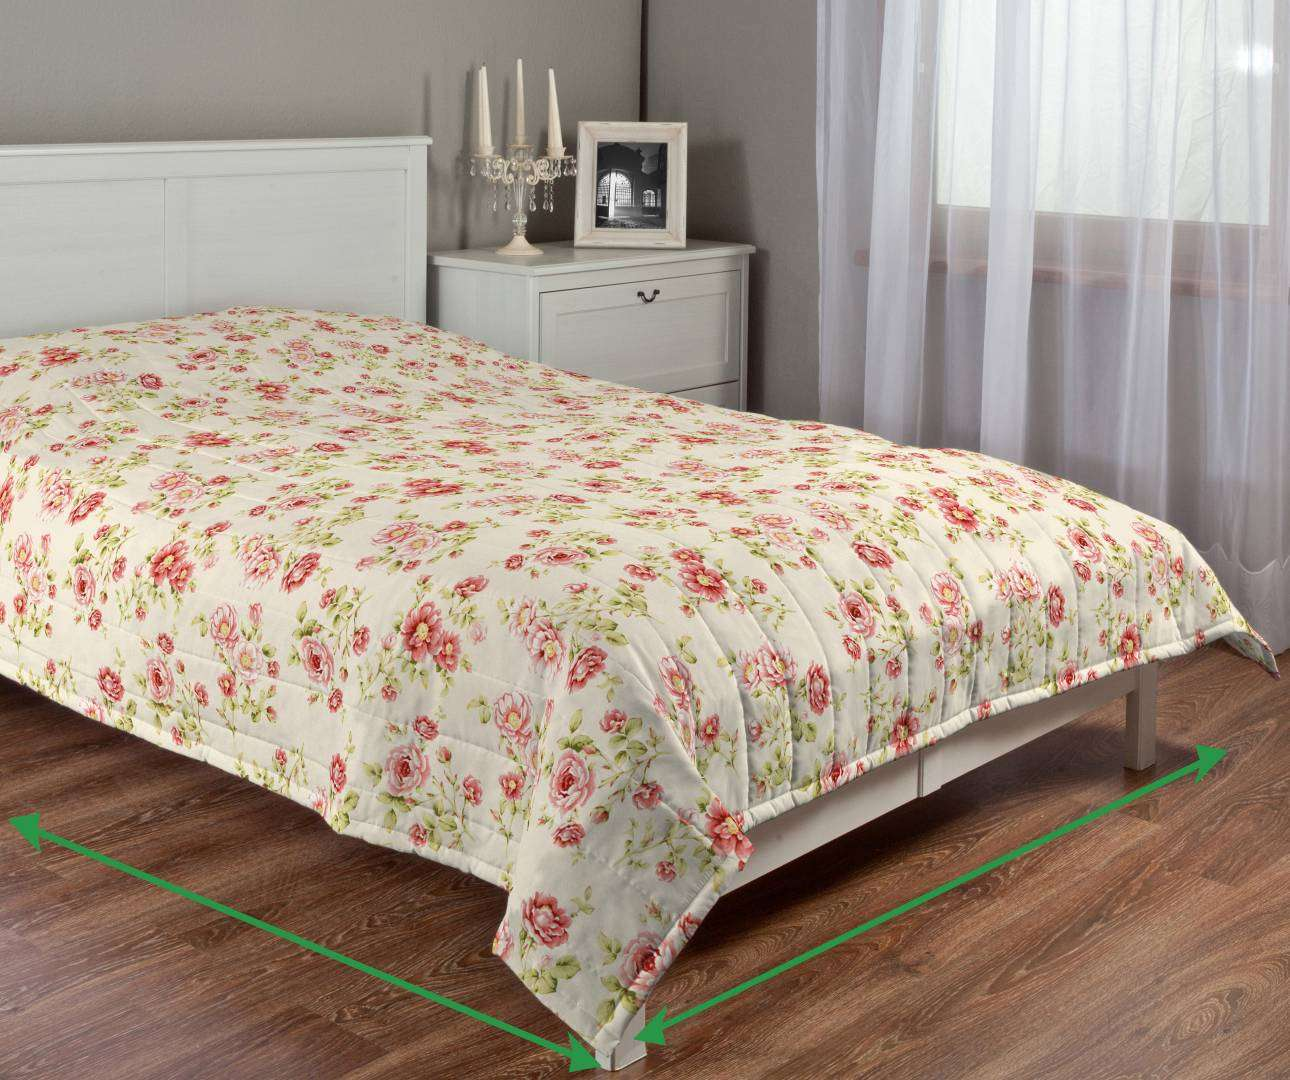 Quilted throw (vertical quilt pattern) in collection Ashley, fabric: 137-47